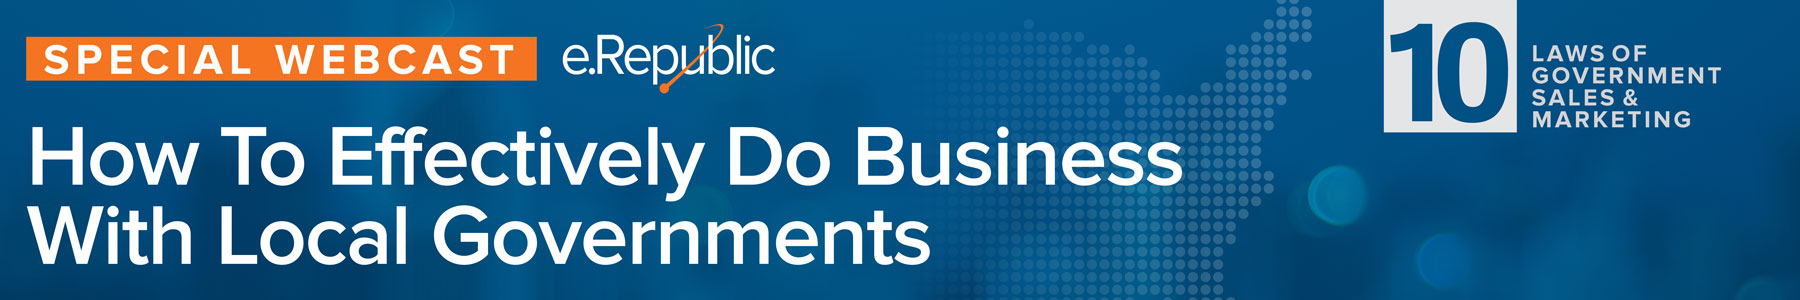 Episode 10: Special Webcast: How to Effectively Do Business with Local Governments